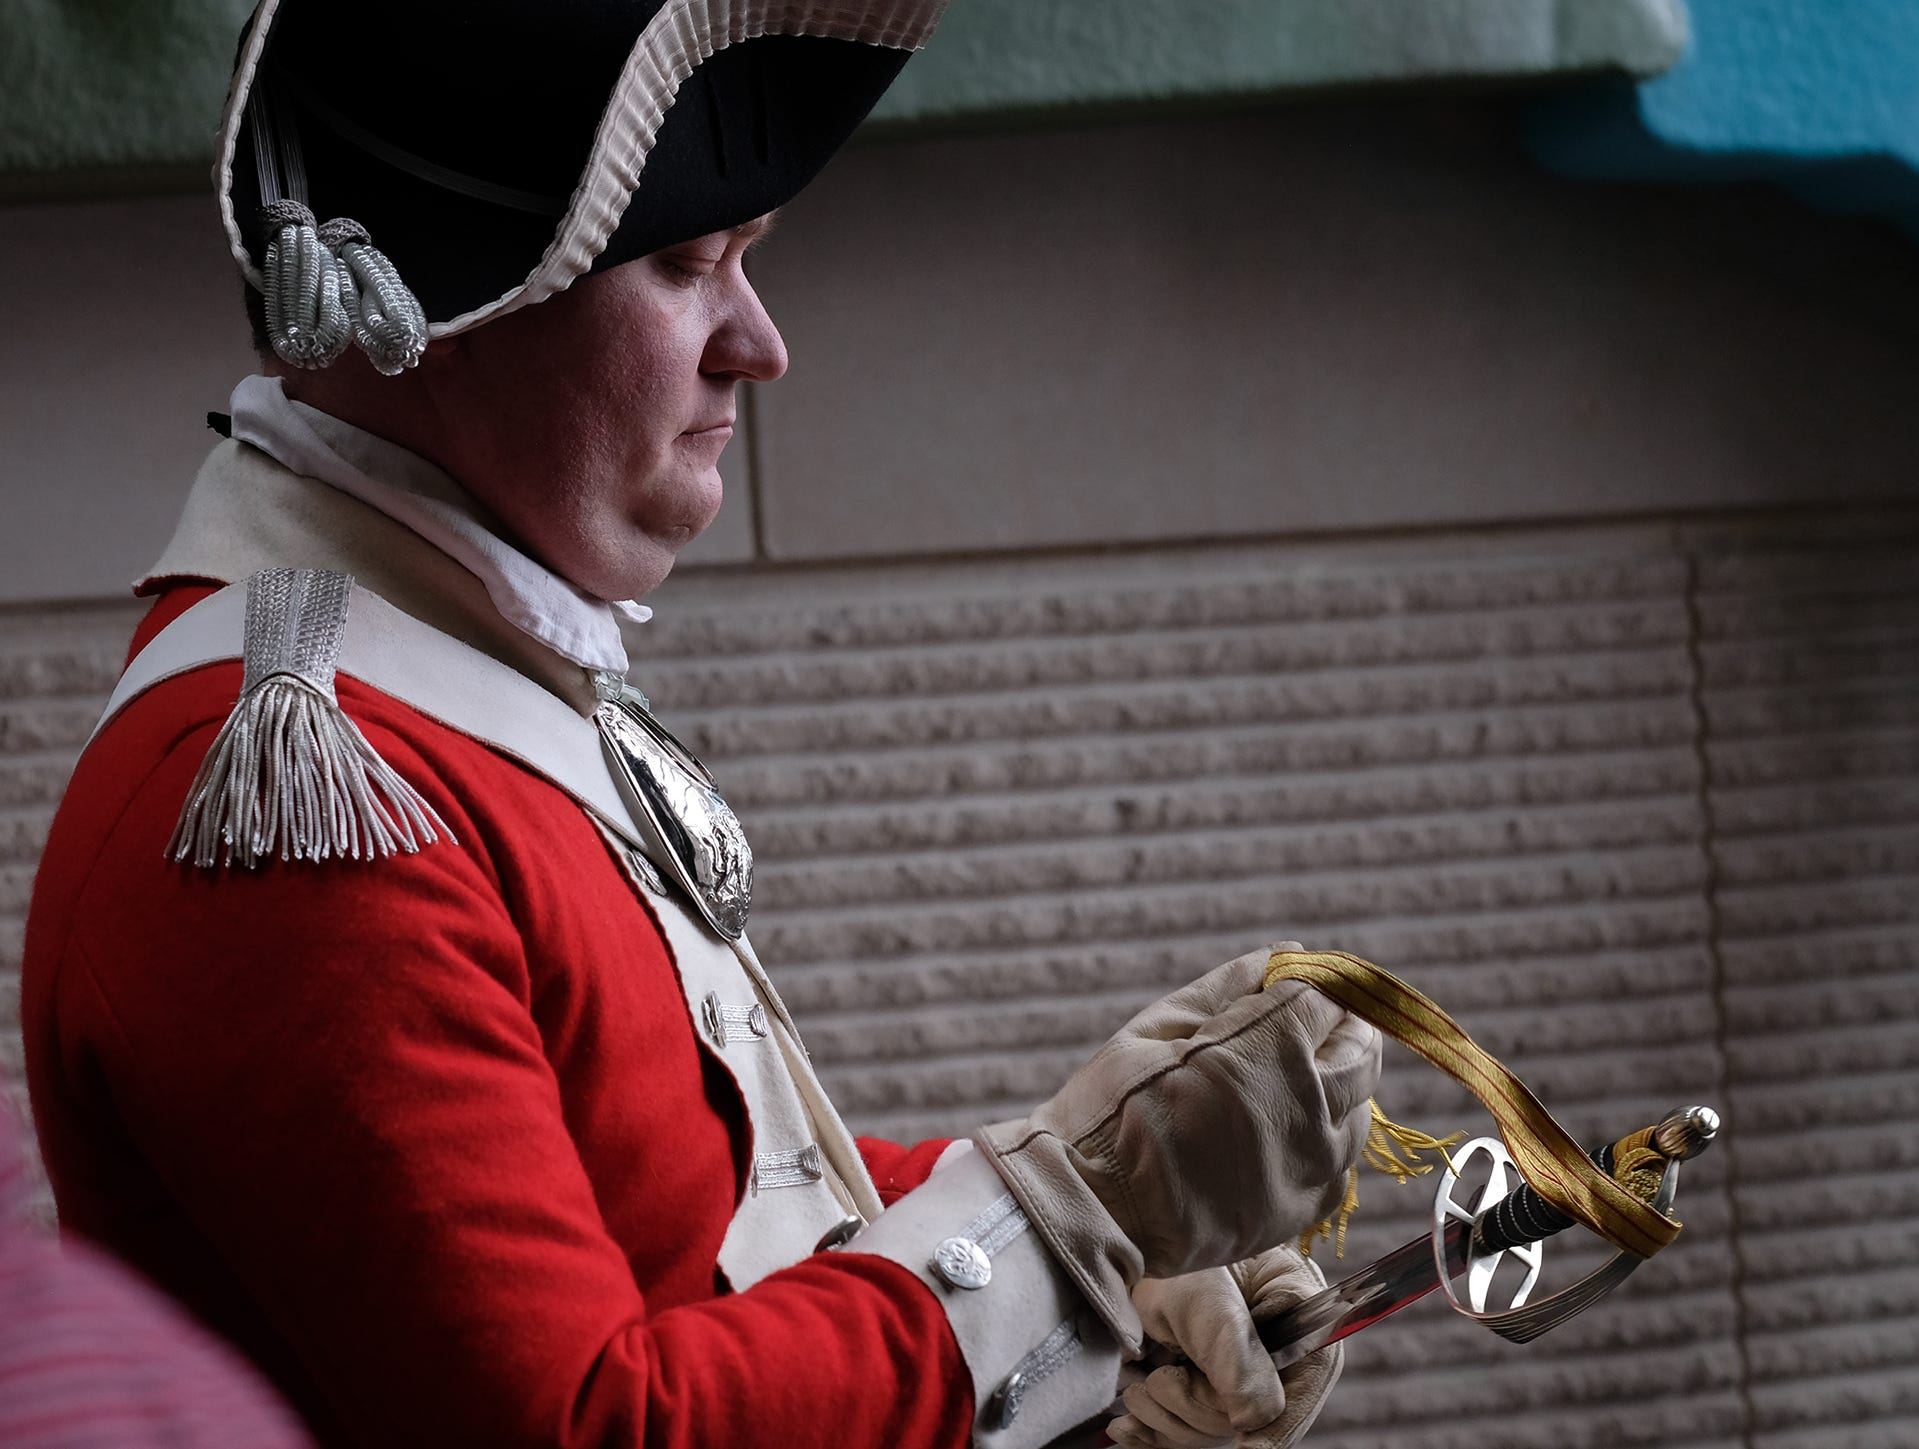 A docent portrays a British redcoat and explains the parts of his sword at the Welcome to Statehood Day 2019 event at the Michigan Library and Historical Center Saturday, Jan. 26, 2019. Michigan became a state on this day in 1837.